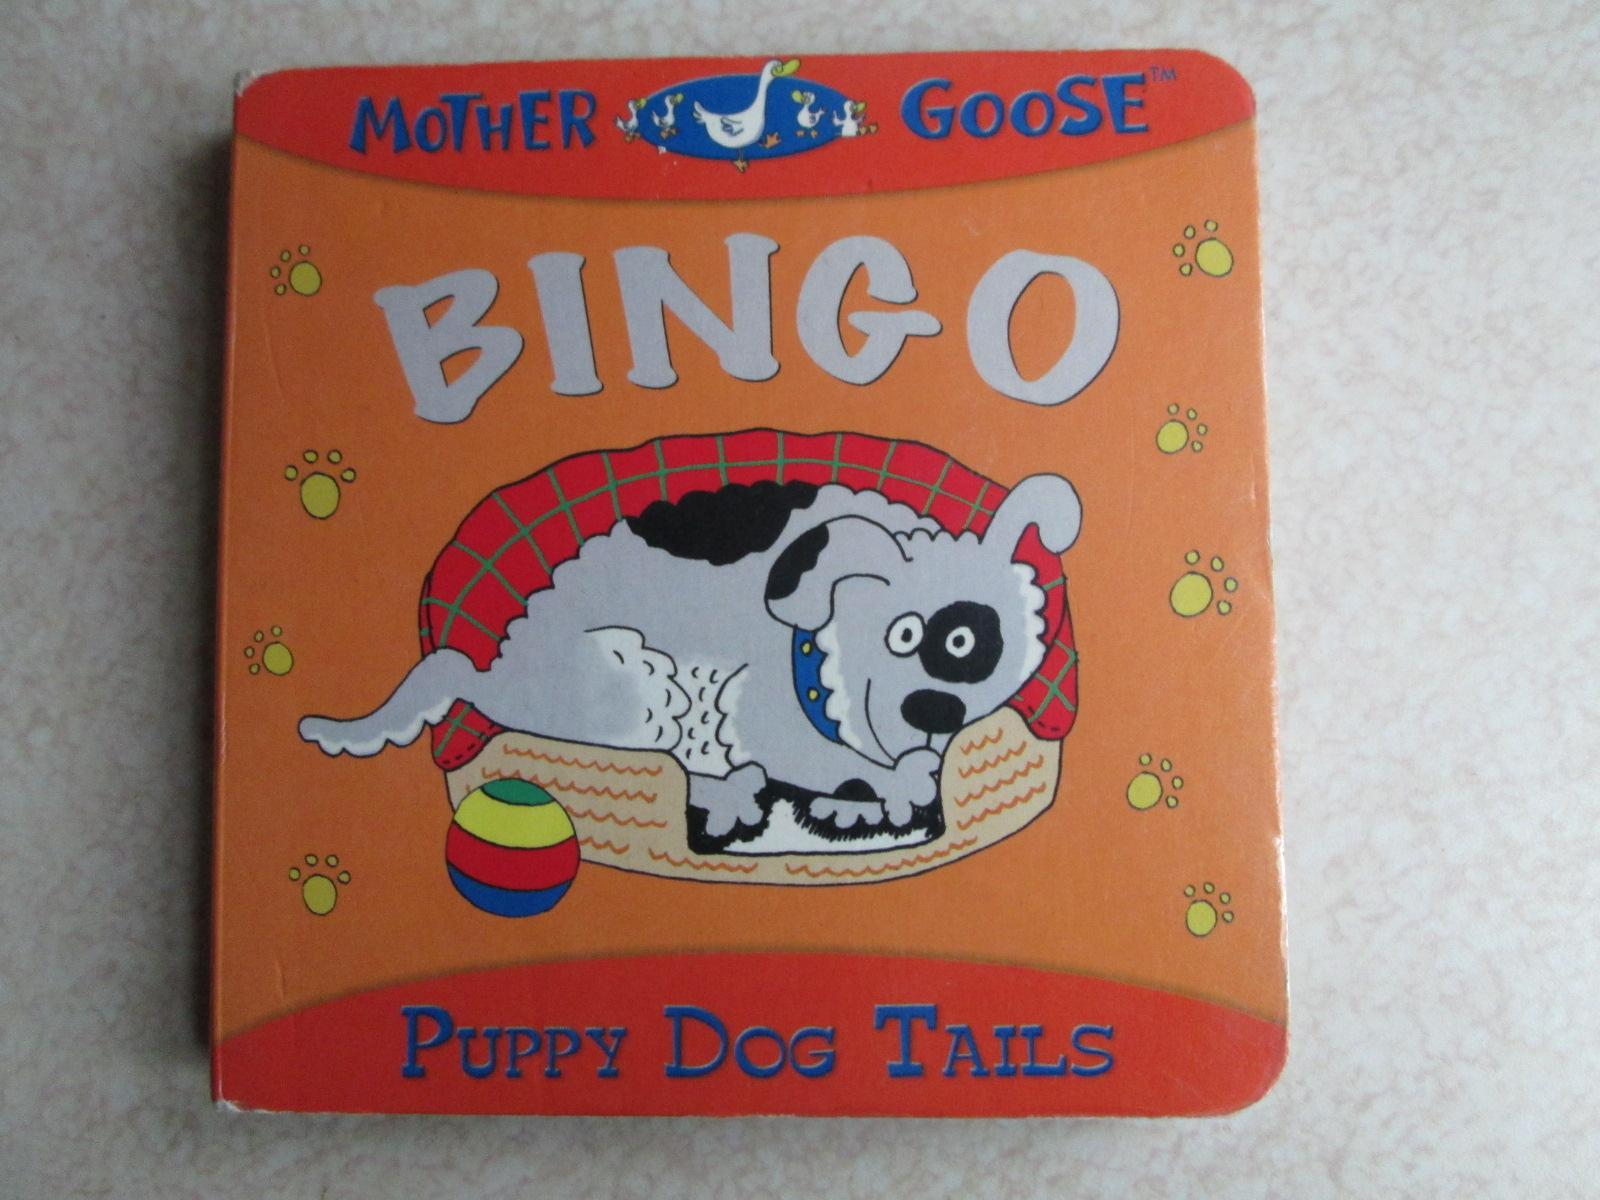 Mother Goose Bingo Puppy Dog Tails Board Book By Innovage Inc